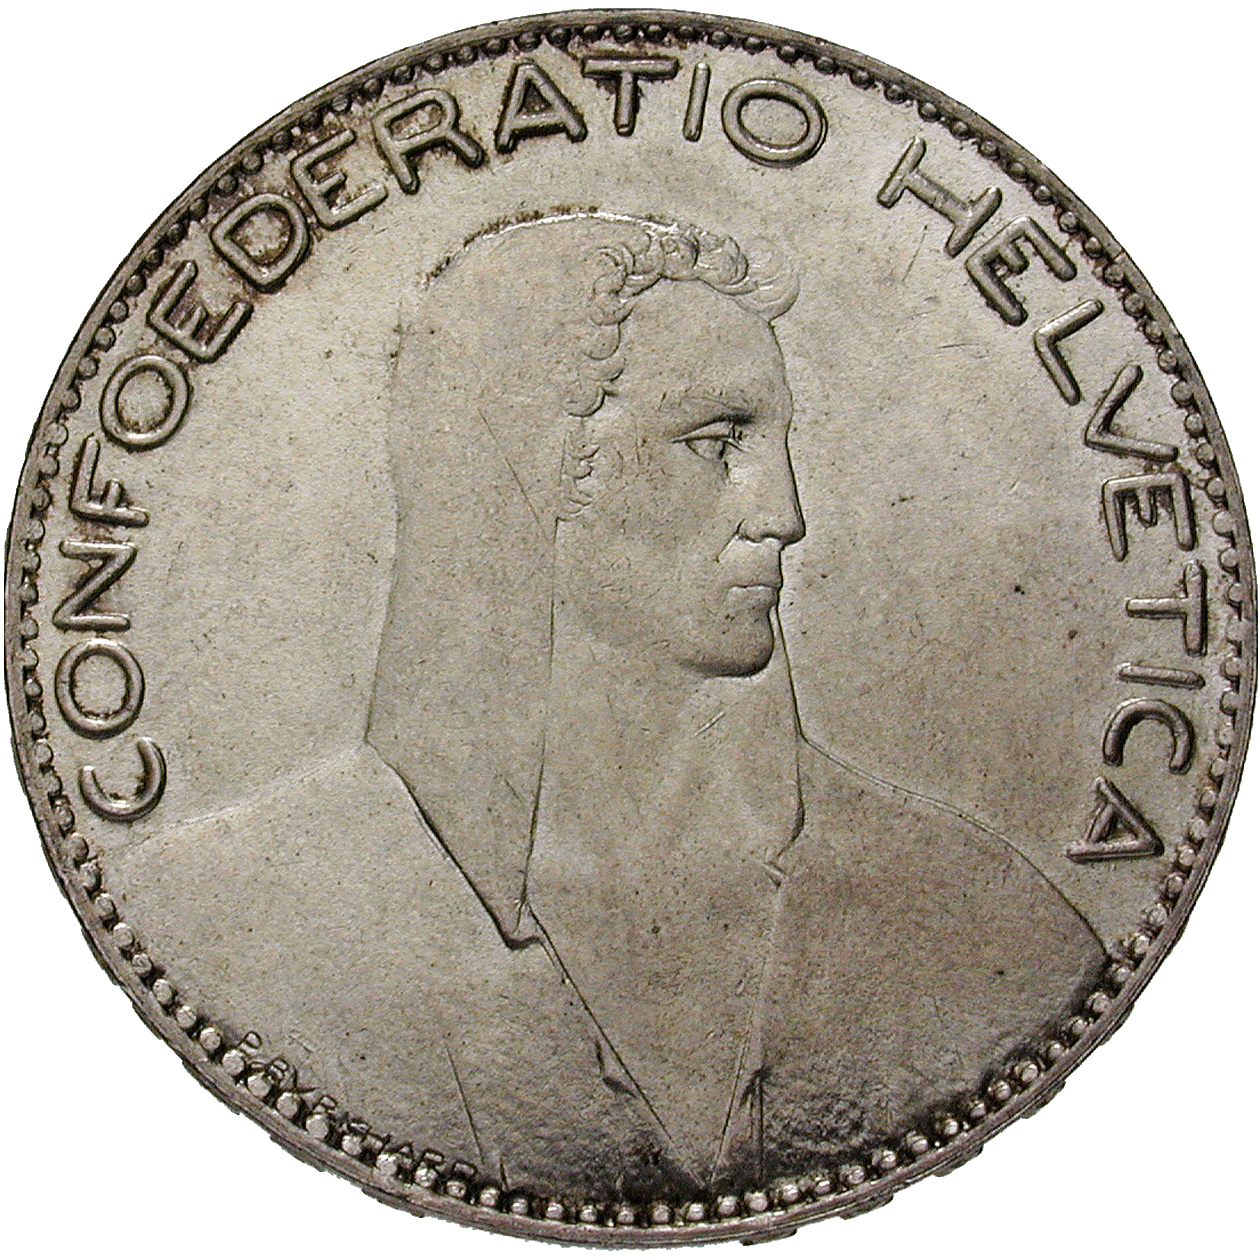 Swiss Confederation, 5 Francs 1922 (obverse)